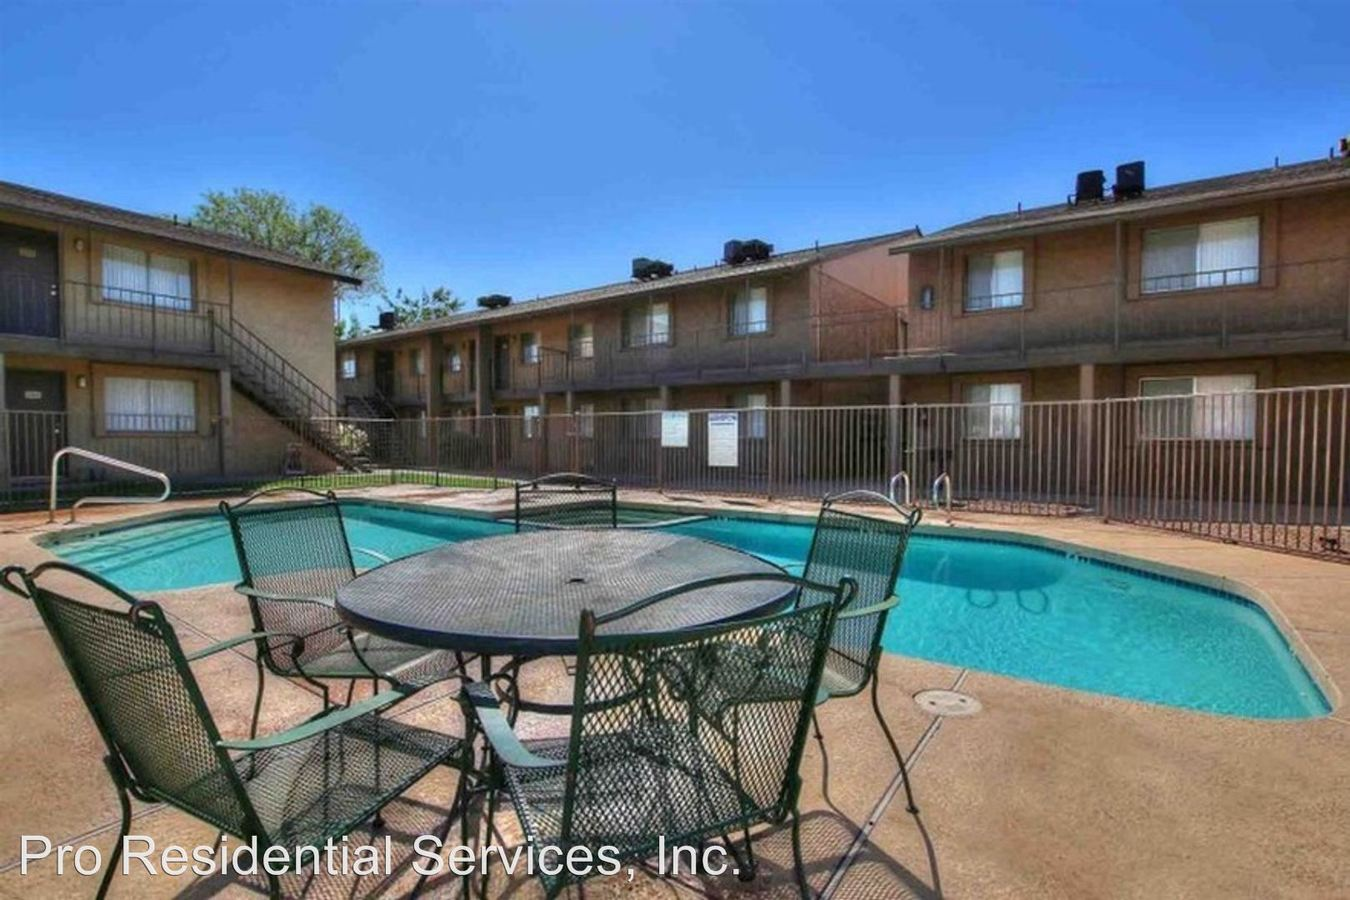 2 Bedrooms 1 Bathroom Apartment for rent at 6801 N. 25th Drive Attn: Leasing Office in Phoenix, AZ